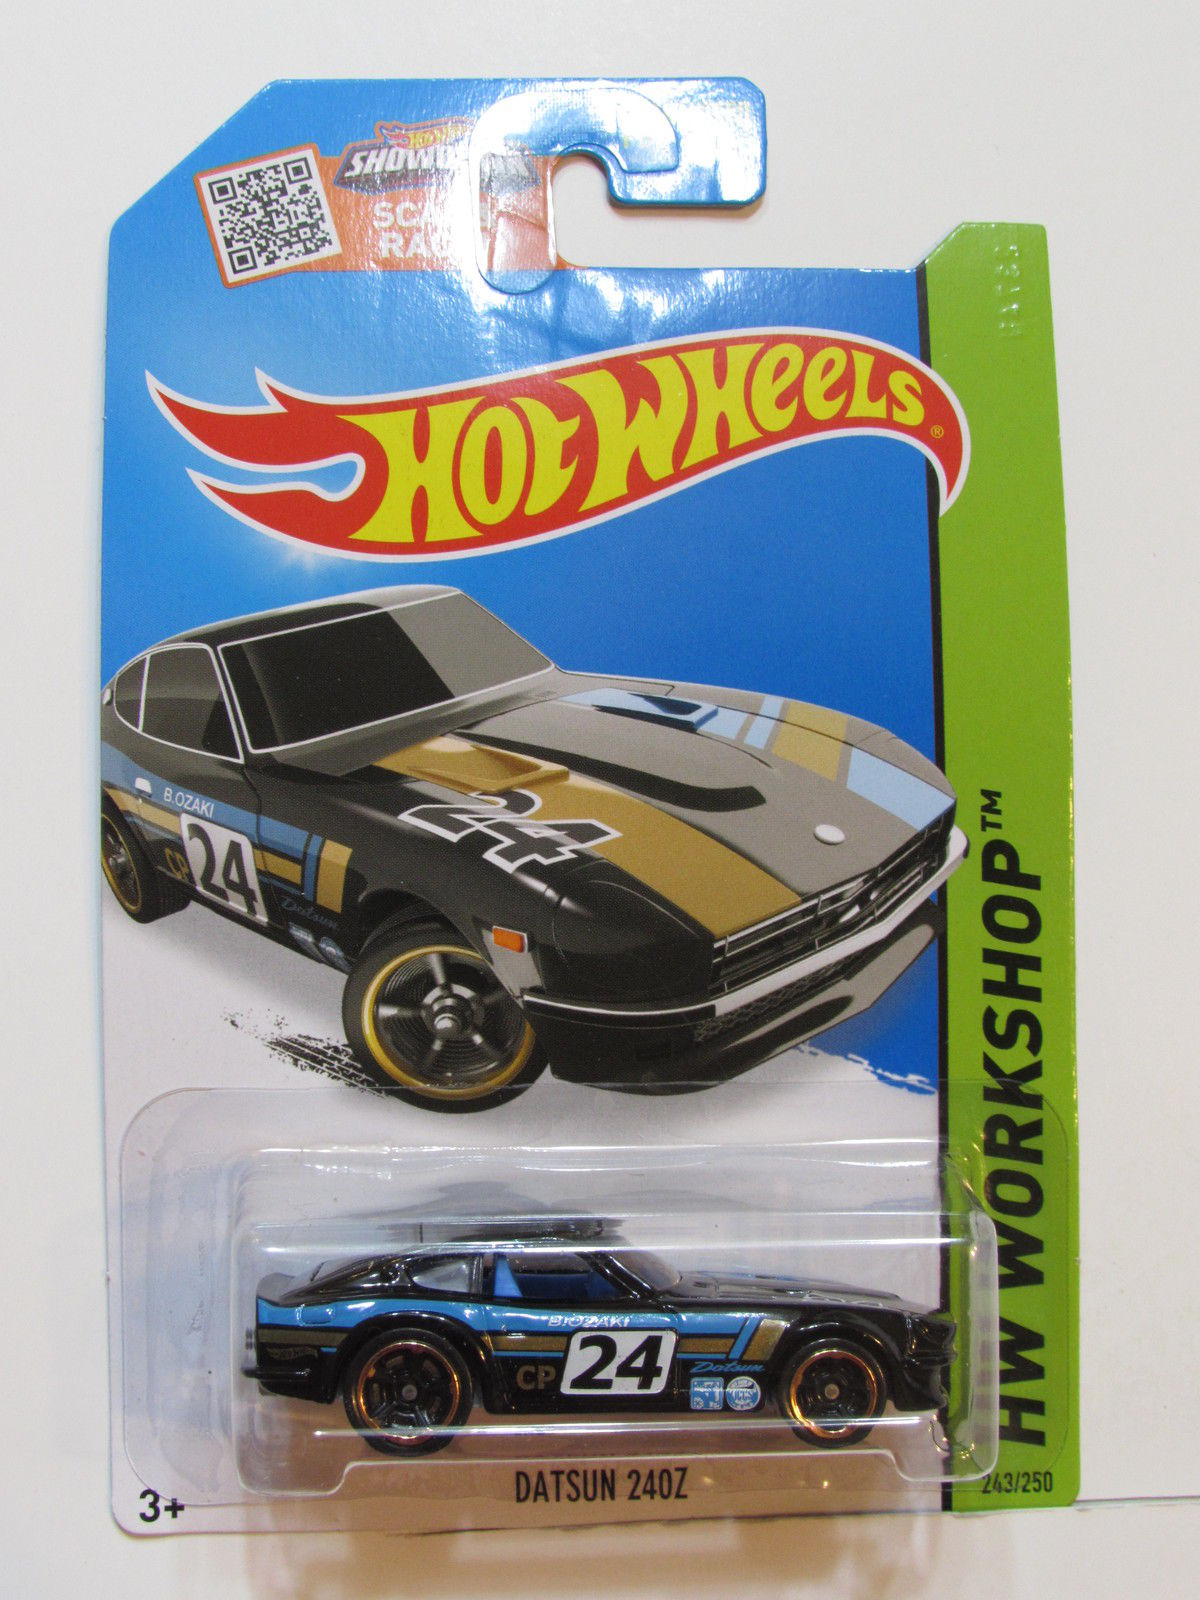 HOT WHEELS 2015 HW WORKSHOP - THEN & NOW DATSUN 240Z BLACK